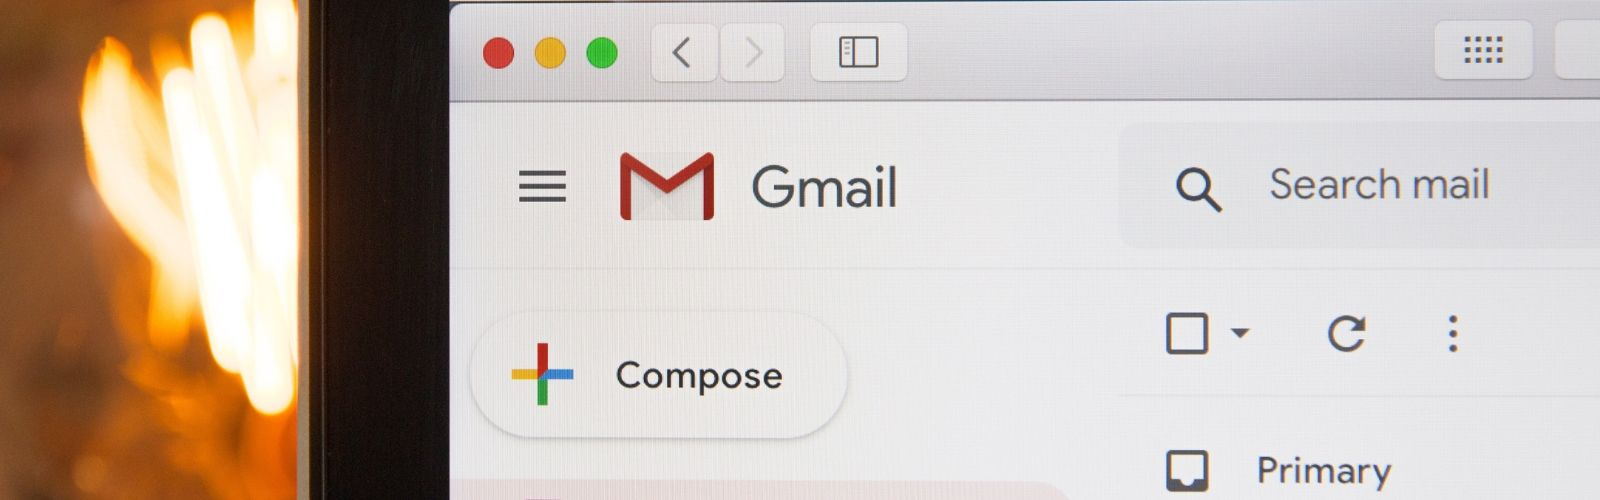 gmail on computer